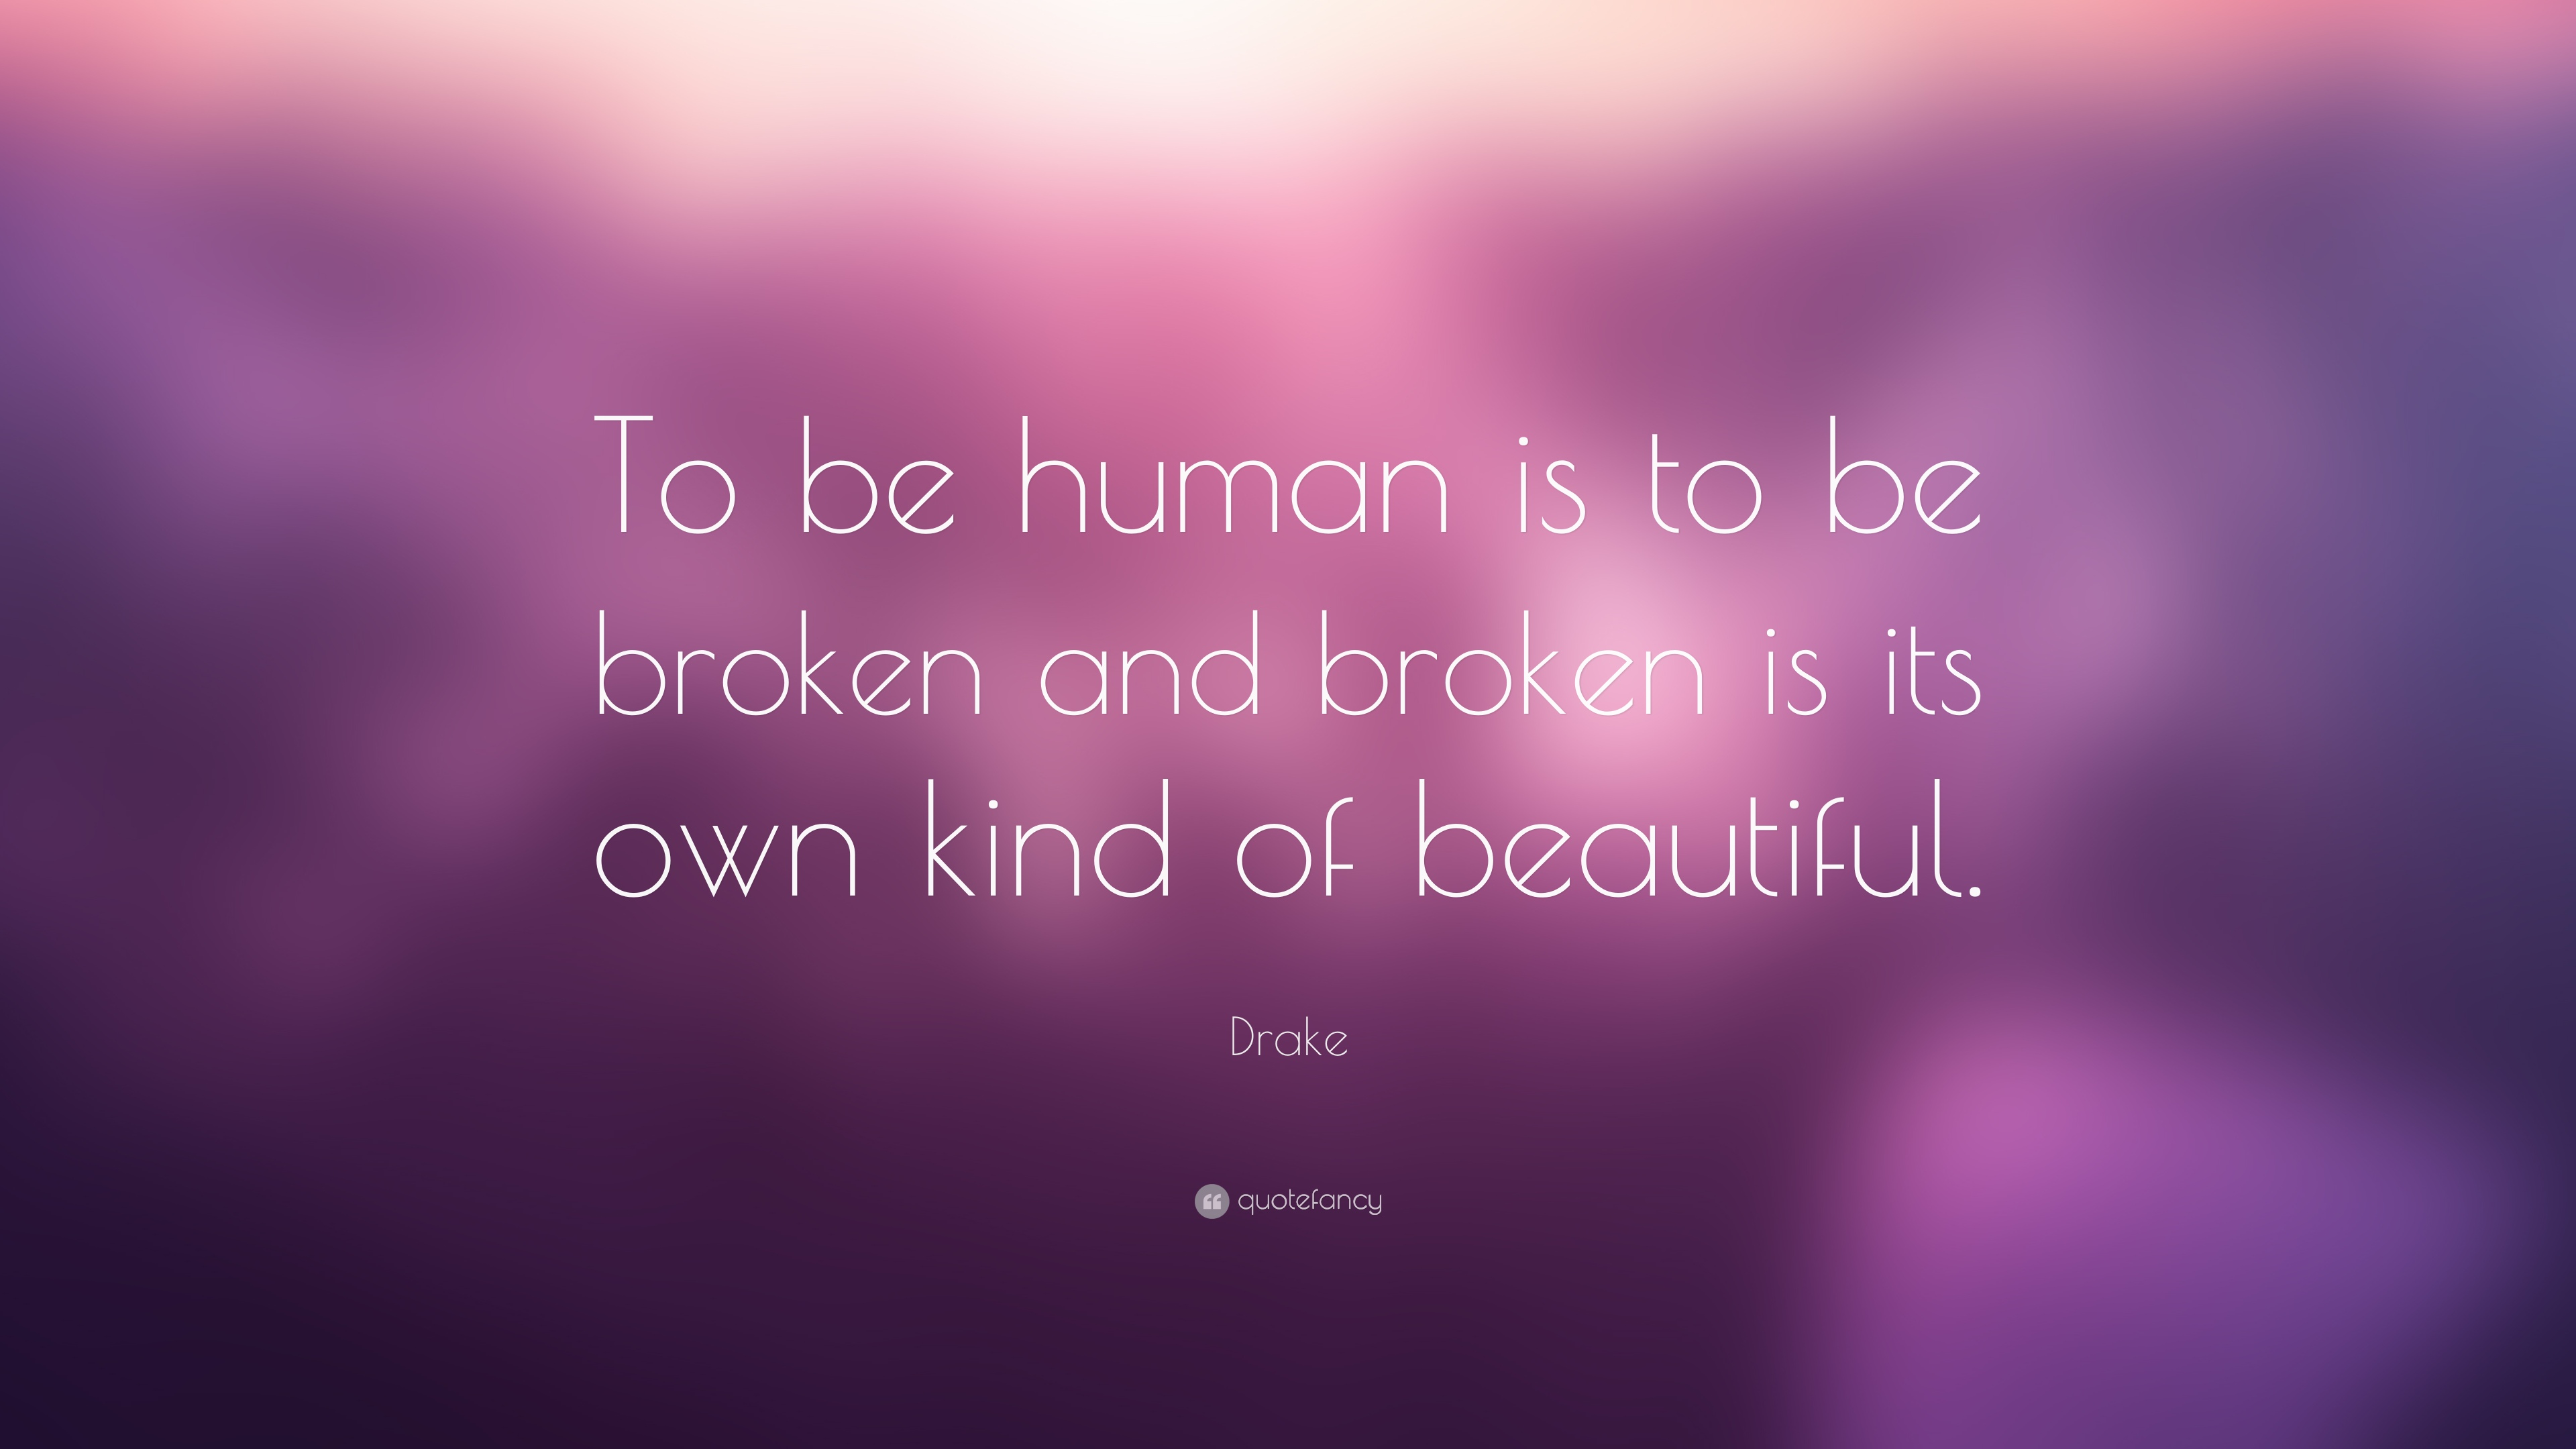 Drake Quote To Be Human Is To Be Broken And Broken Is Its Own Kind